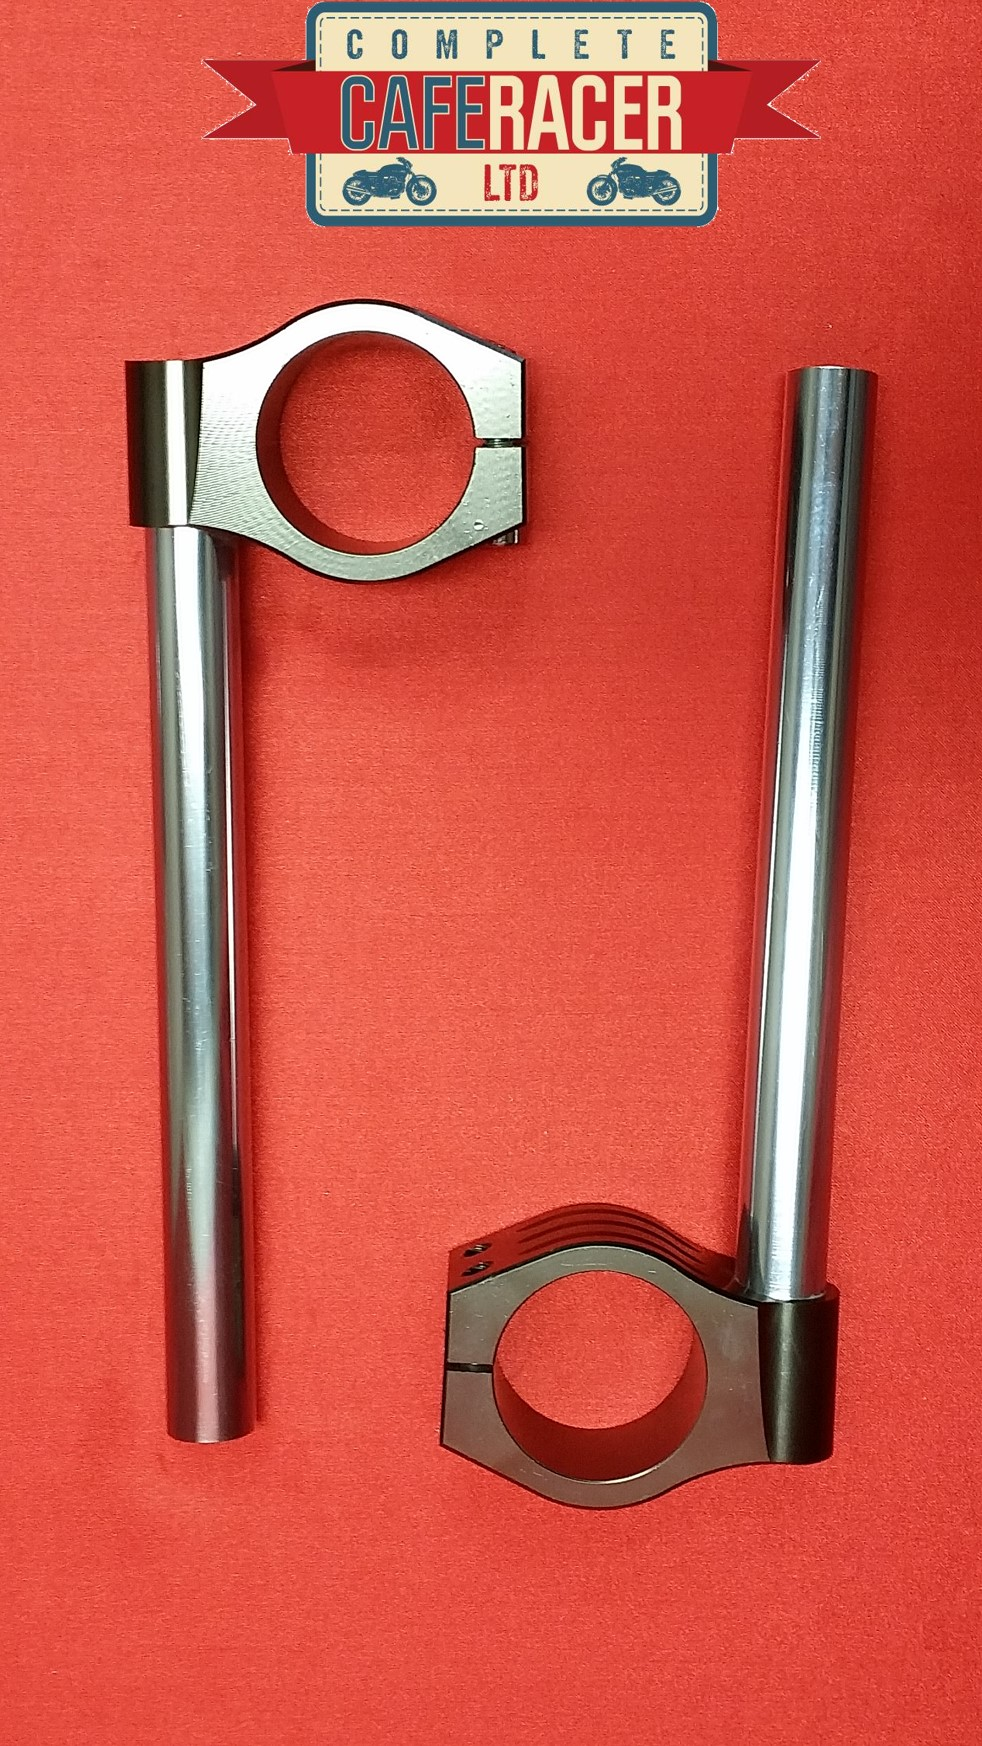 CAFE RACER CNC MACHINED ALLOY CLIP ONs TO FIT 50MM FORKS